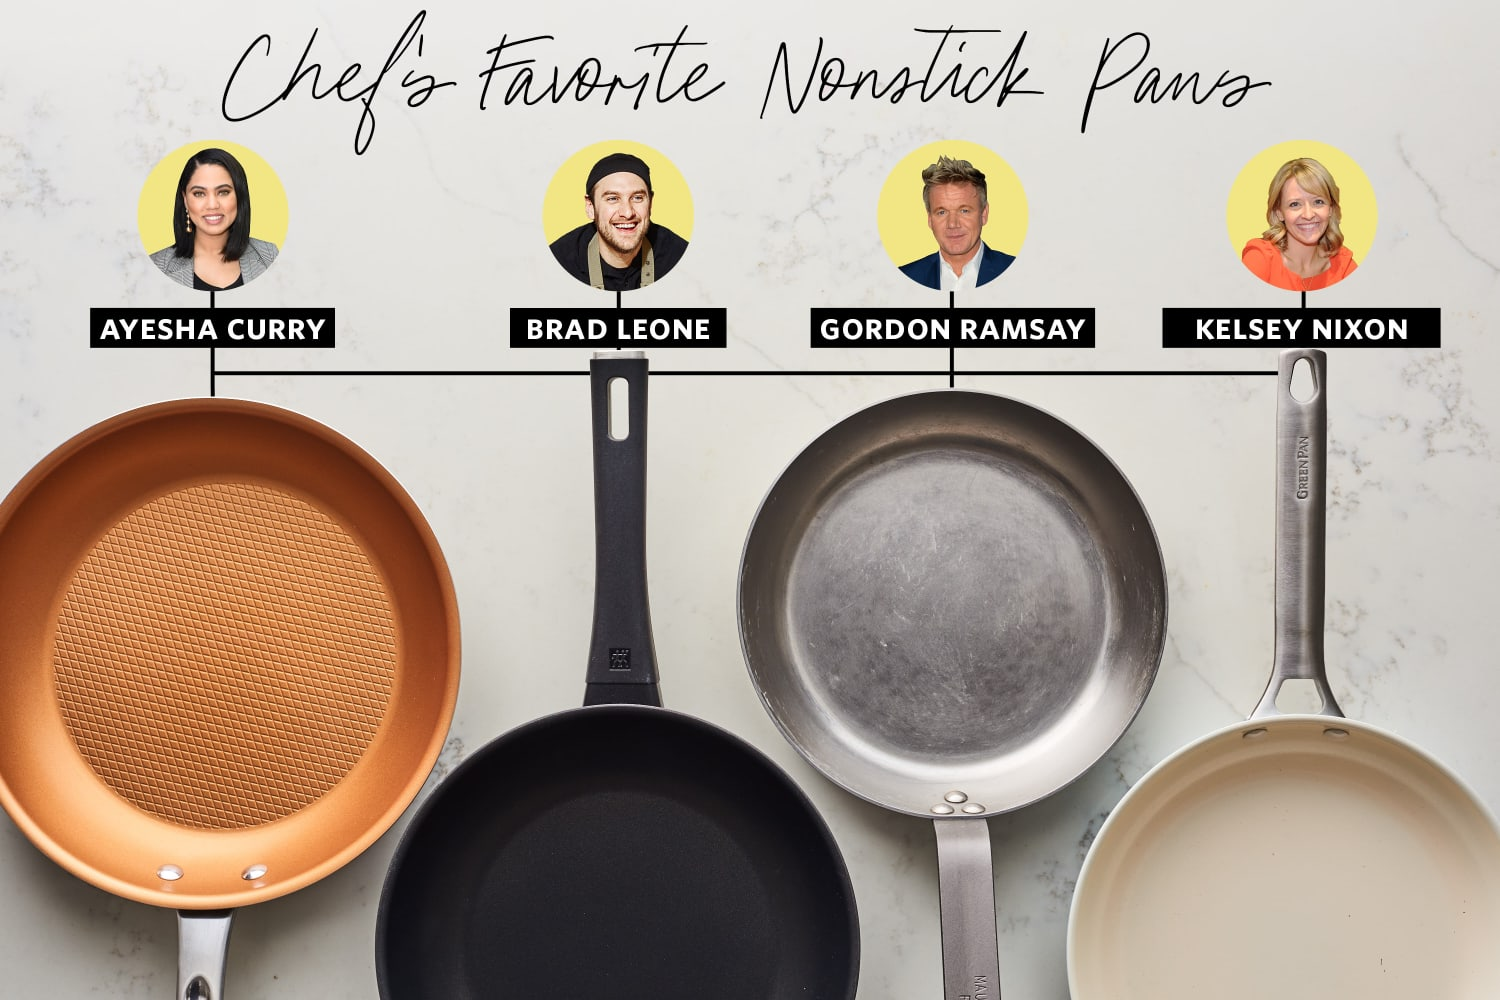 We Tried 4 Celebrity Chefs' Favorite Nonstick Pans and Here's the One We Liked Best